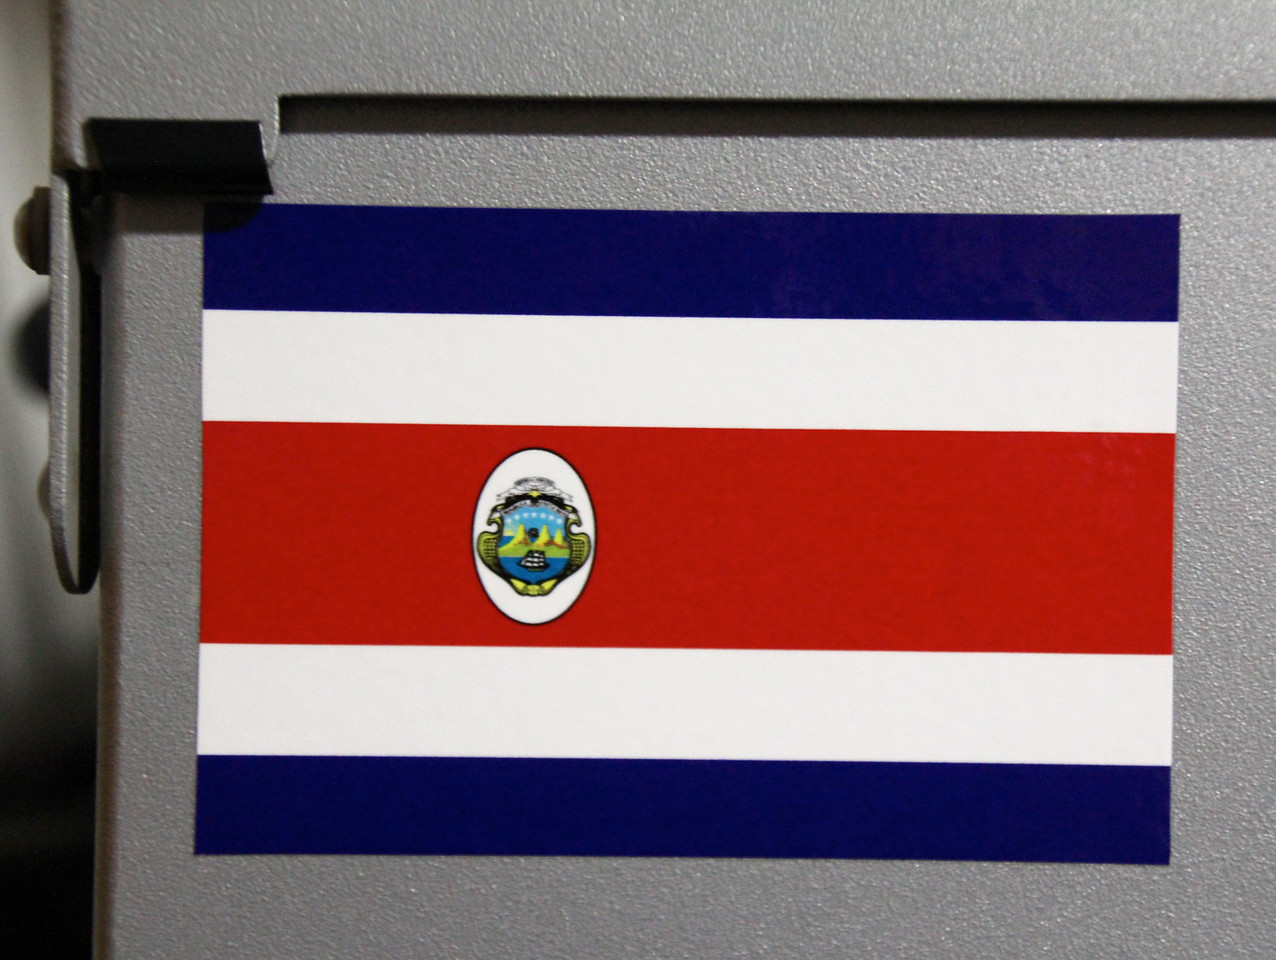 The colors of the flag represent the blue skies. Costa Rica is one of the most environmentally conscious countries we have been in yet. The white represents the purity of the heart of the people (some of the most honest and educated in Central America). The red represents the blood that has been spilt for their homeland.- Conor